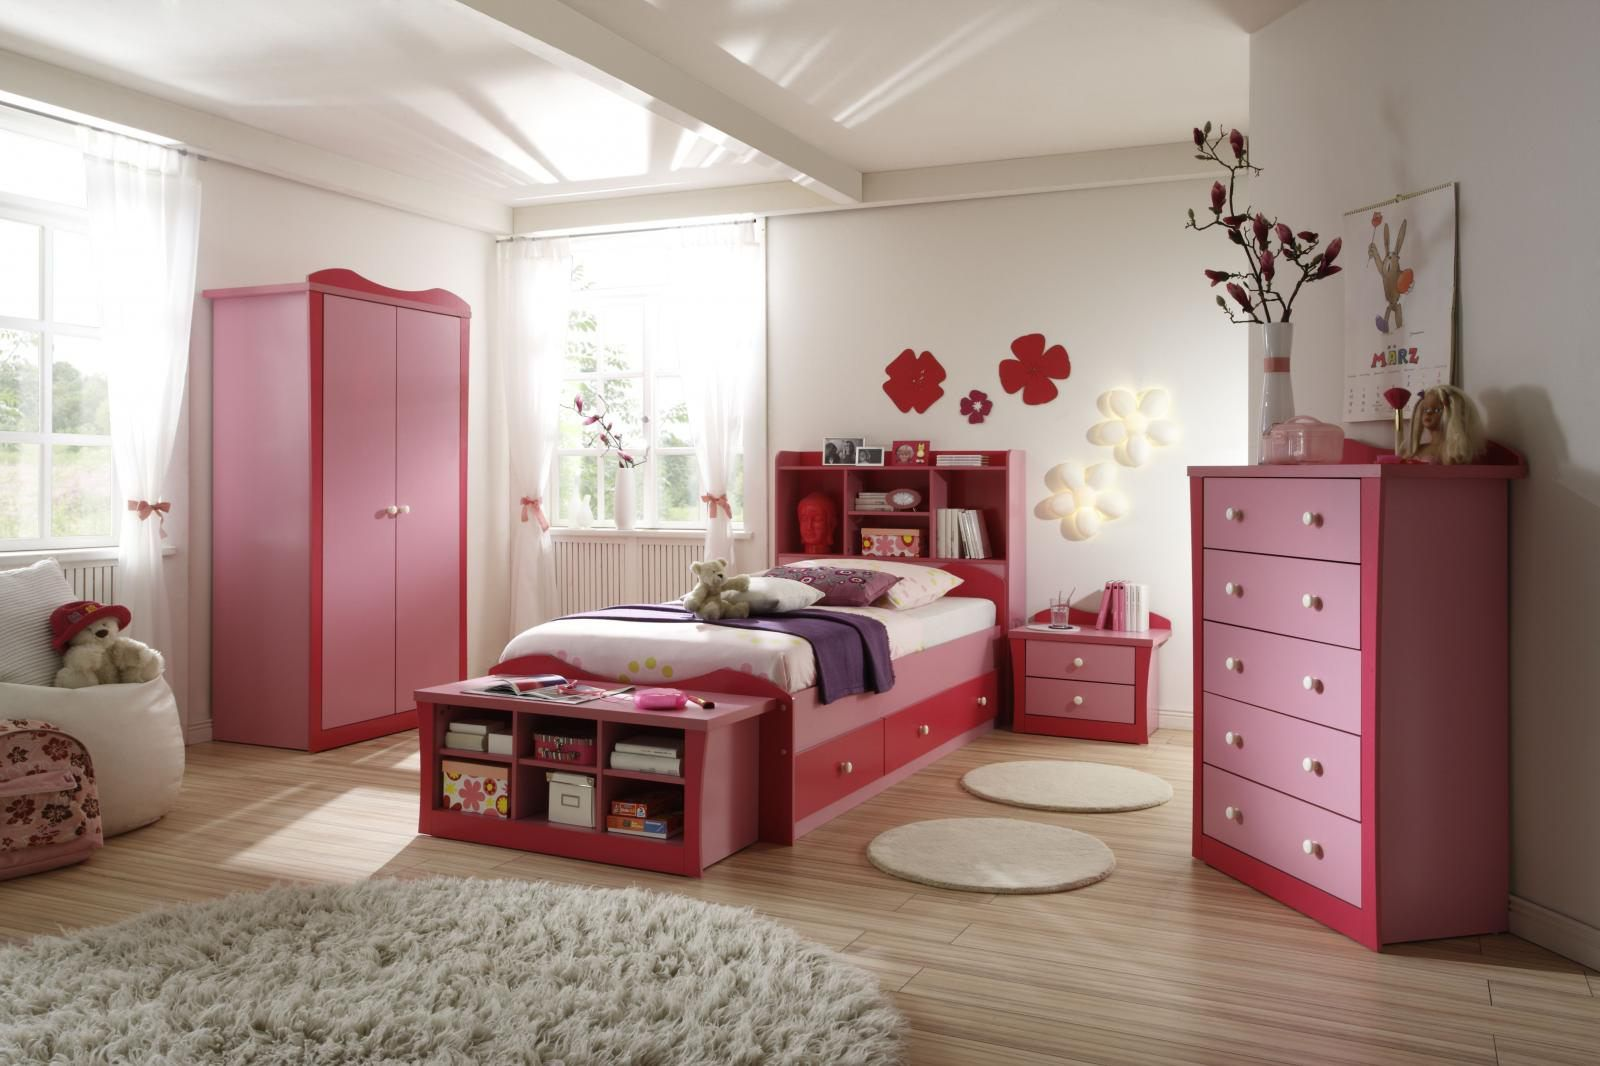 12 Simple Bedroom Ideas For A Teenage Girl Inspiration Photographs